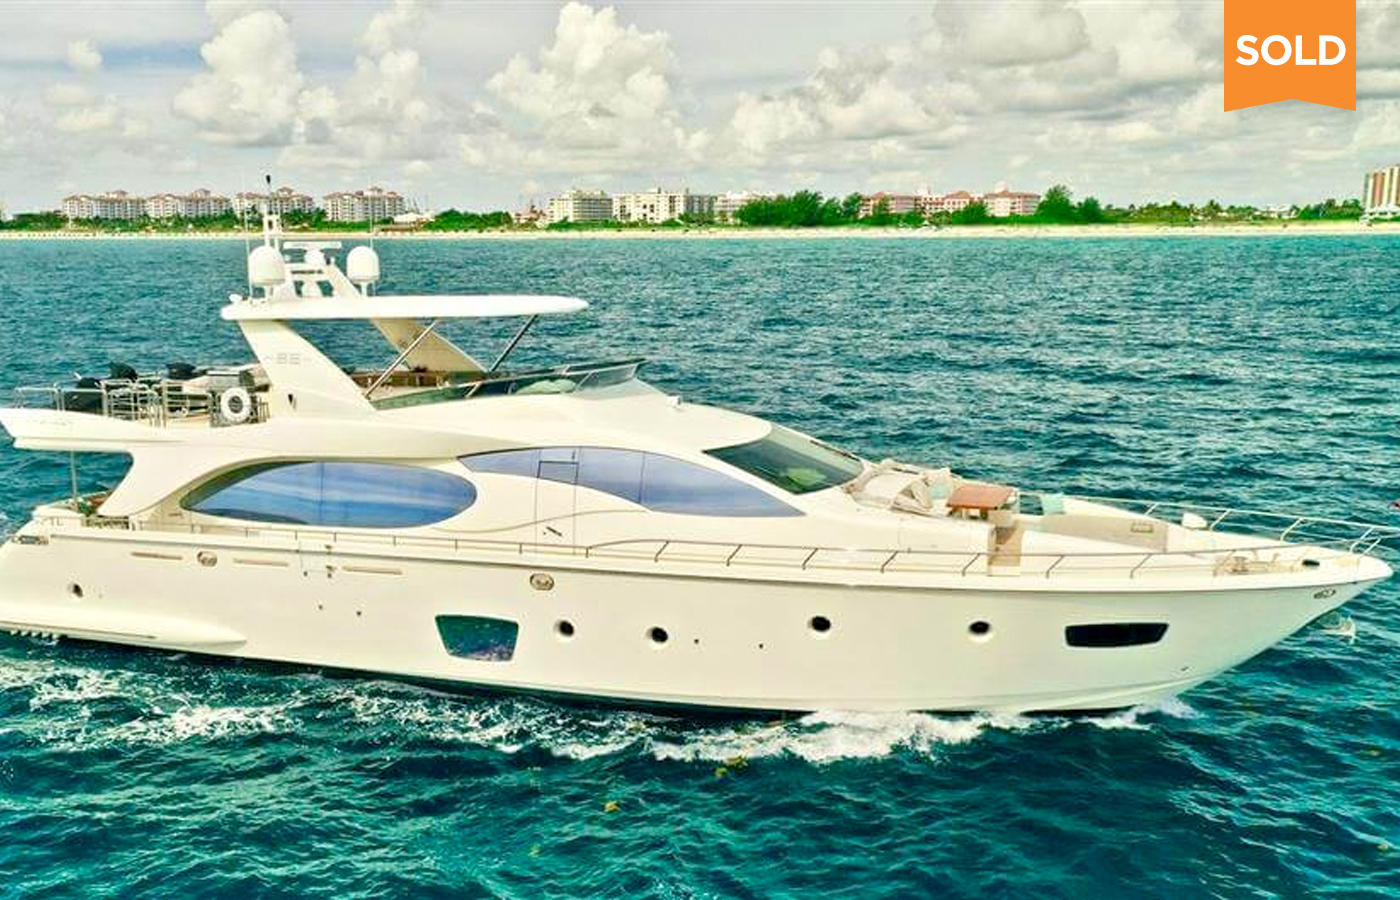 85 Azimut Motor Yacht Sold By Juno Prudhomm